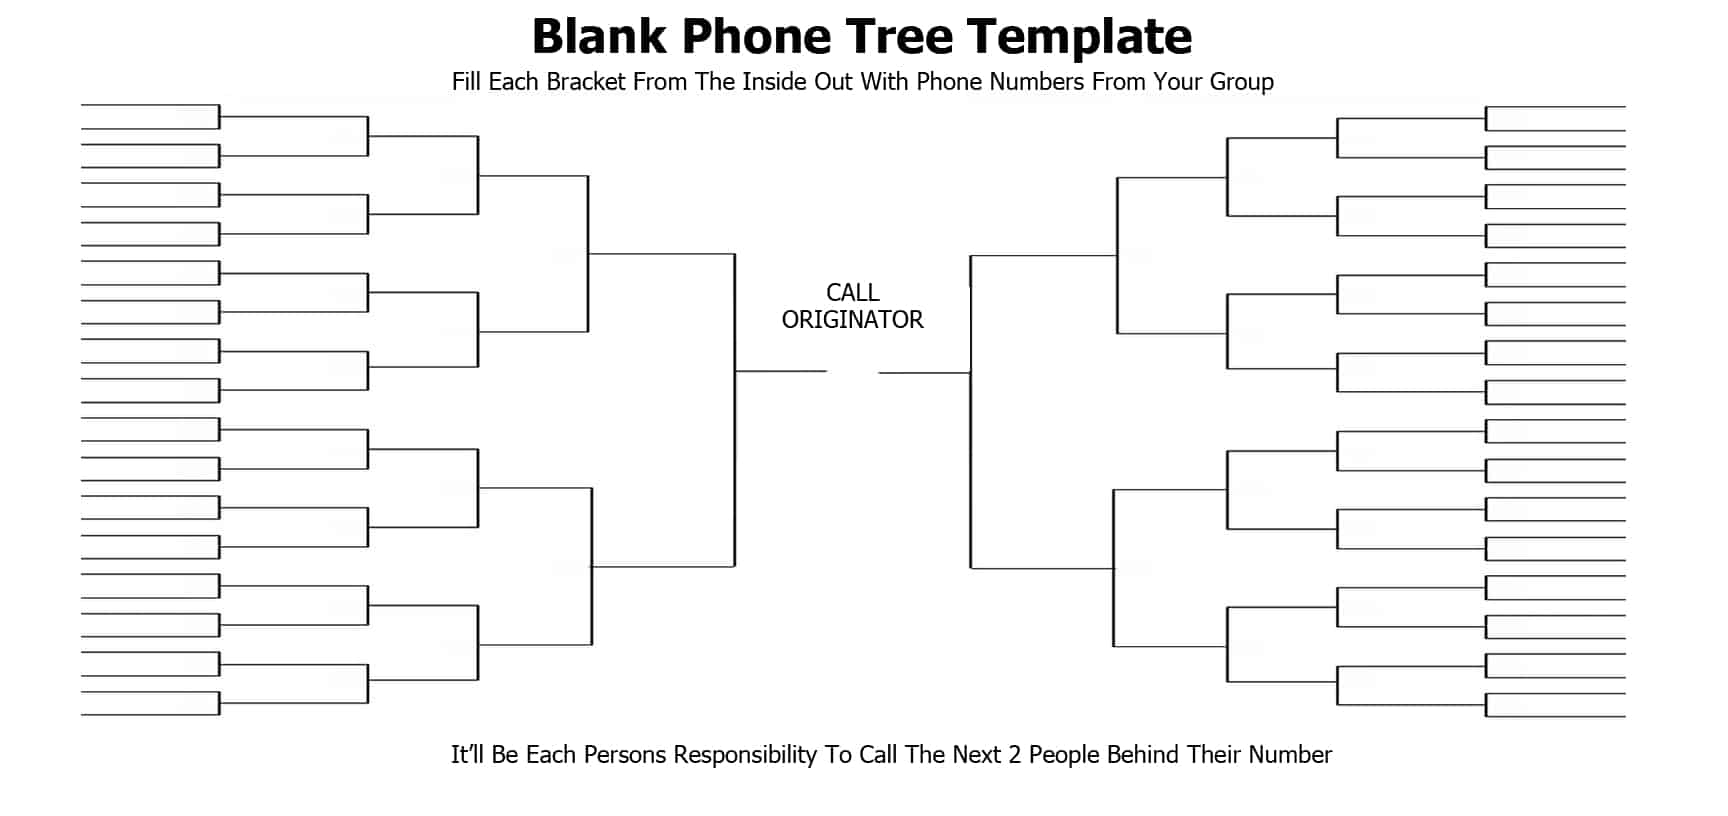 free phone tree templates   word   excel   pdf formats